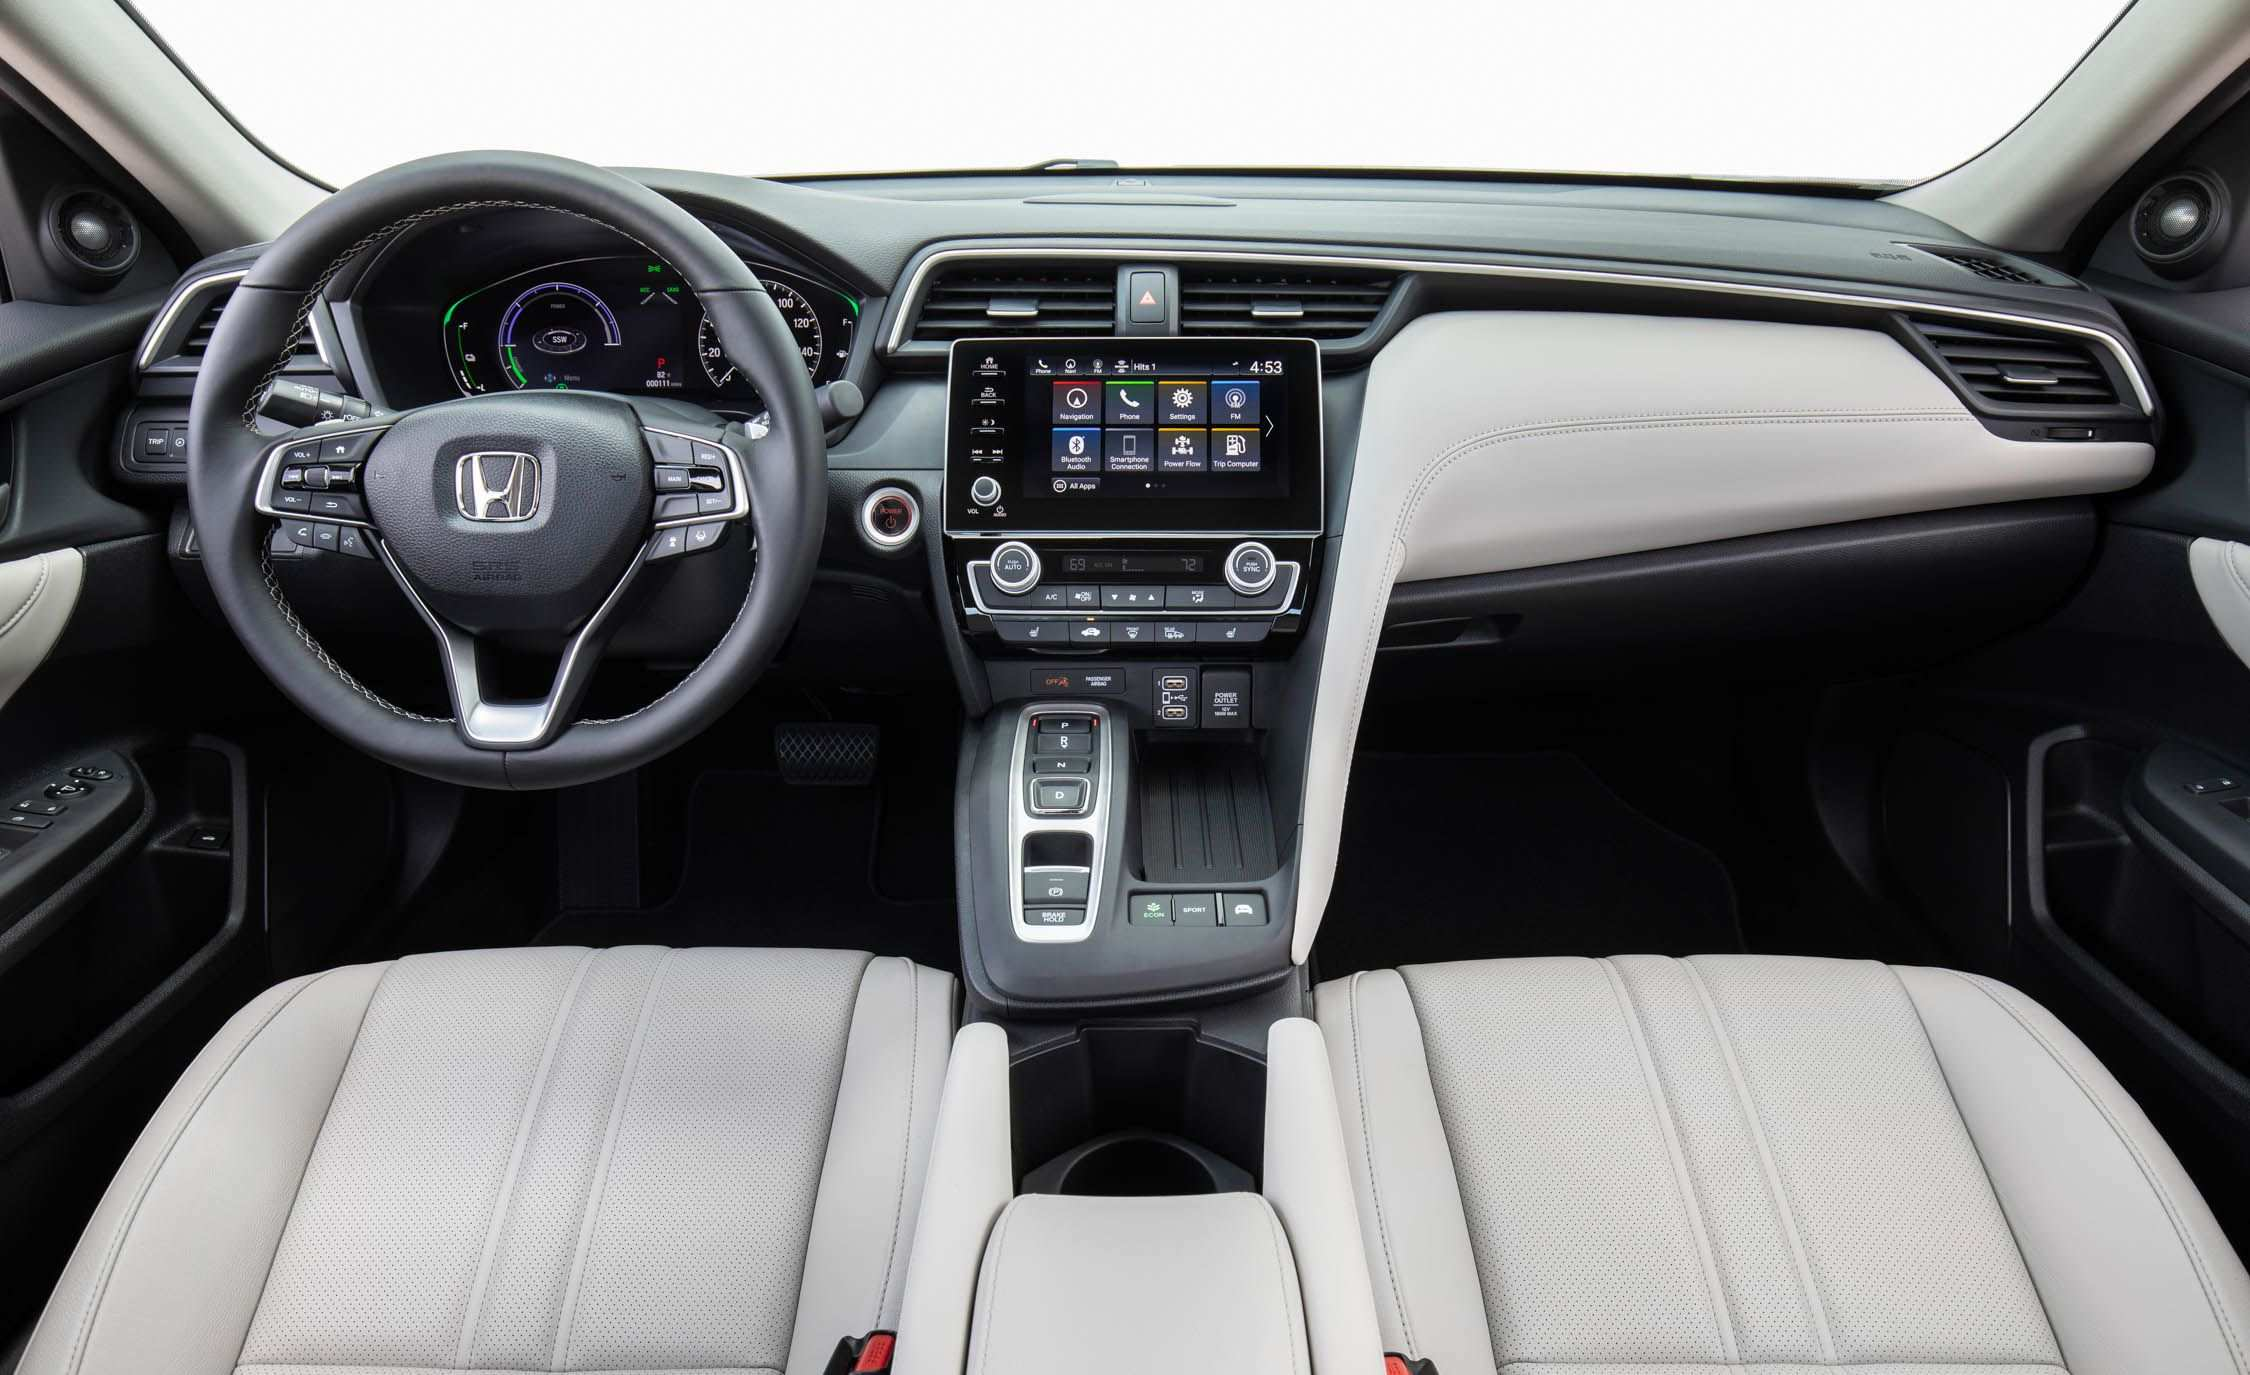 97 Best Review 2020 Honda Insight Concept with 2020 Honda Insight